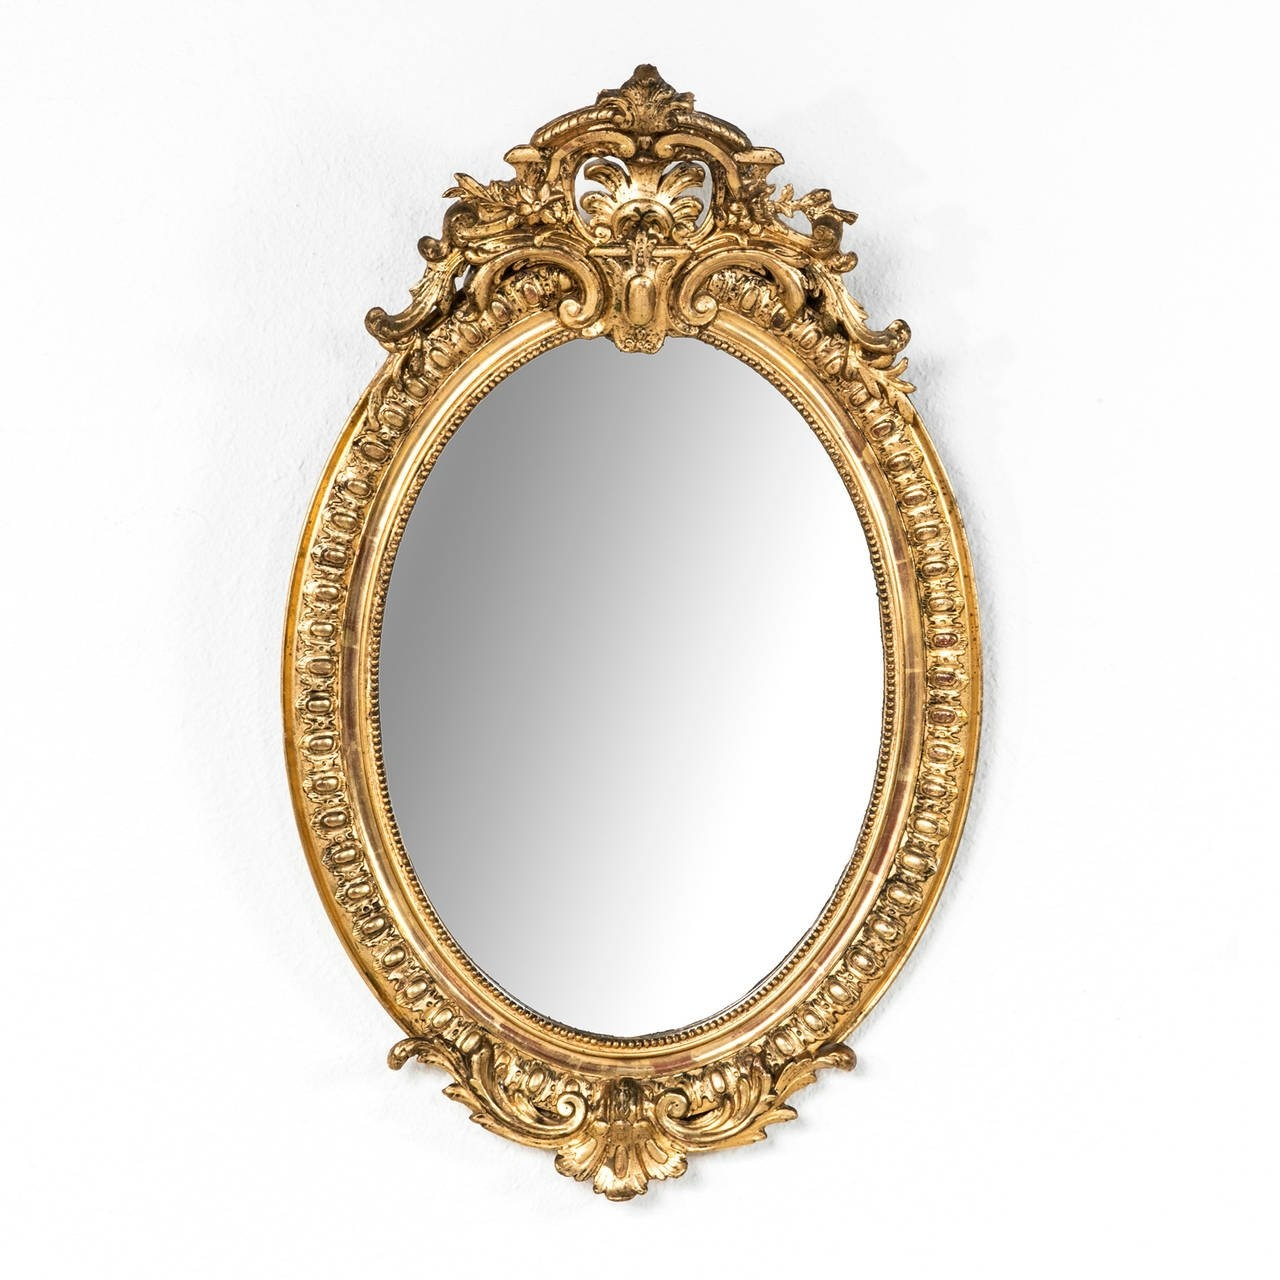 19th Century French Regency Style Giltwood Oval Mirror At 1stdibs With French Oval Mirror (Image 5 of 15)